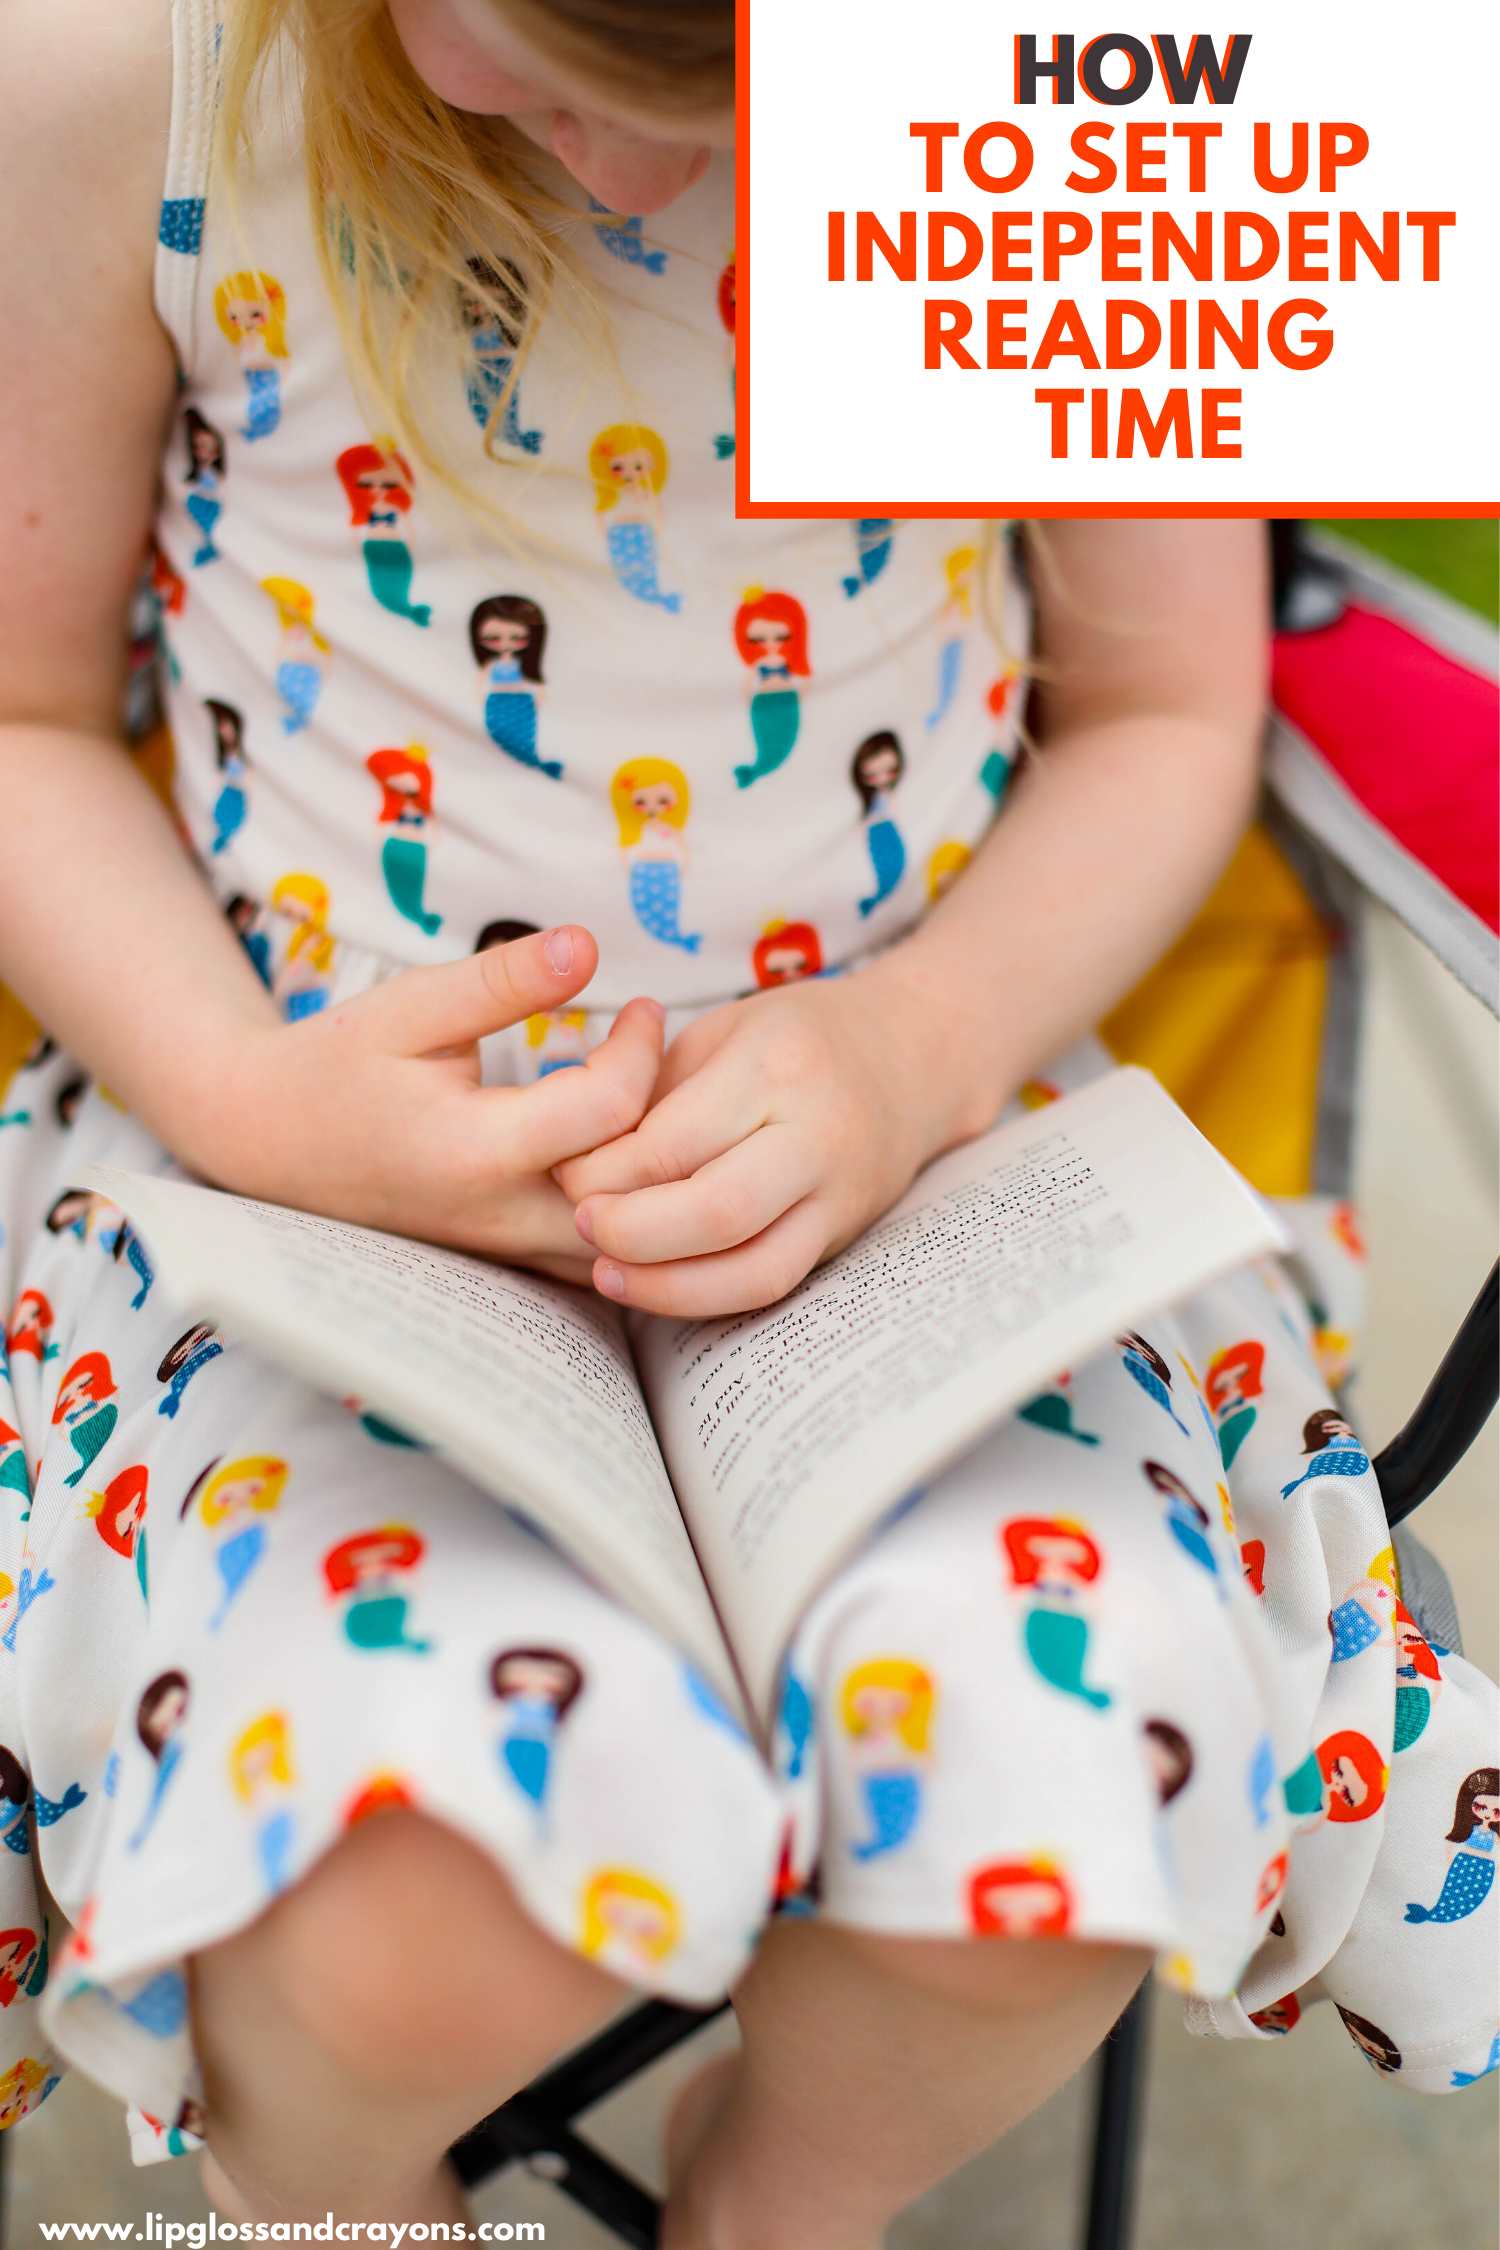 Wondering how to make independent reading happen in your family? Yes, even young children can do independent reading and ENJOY it.  Here's how!